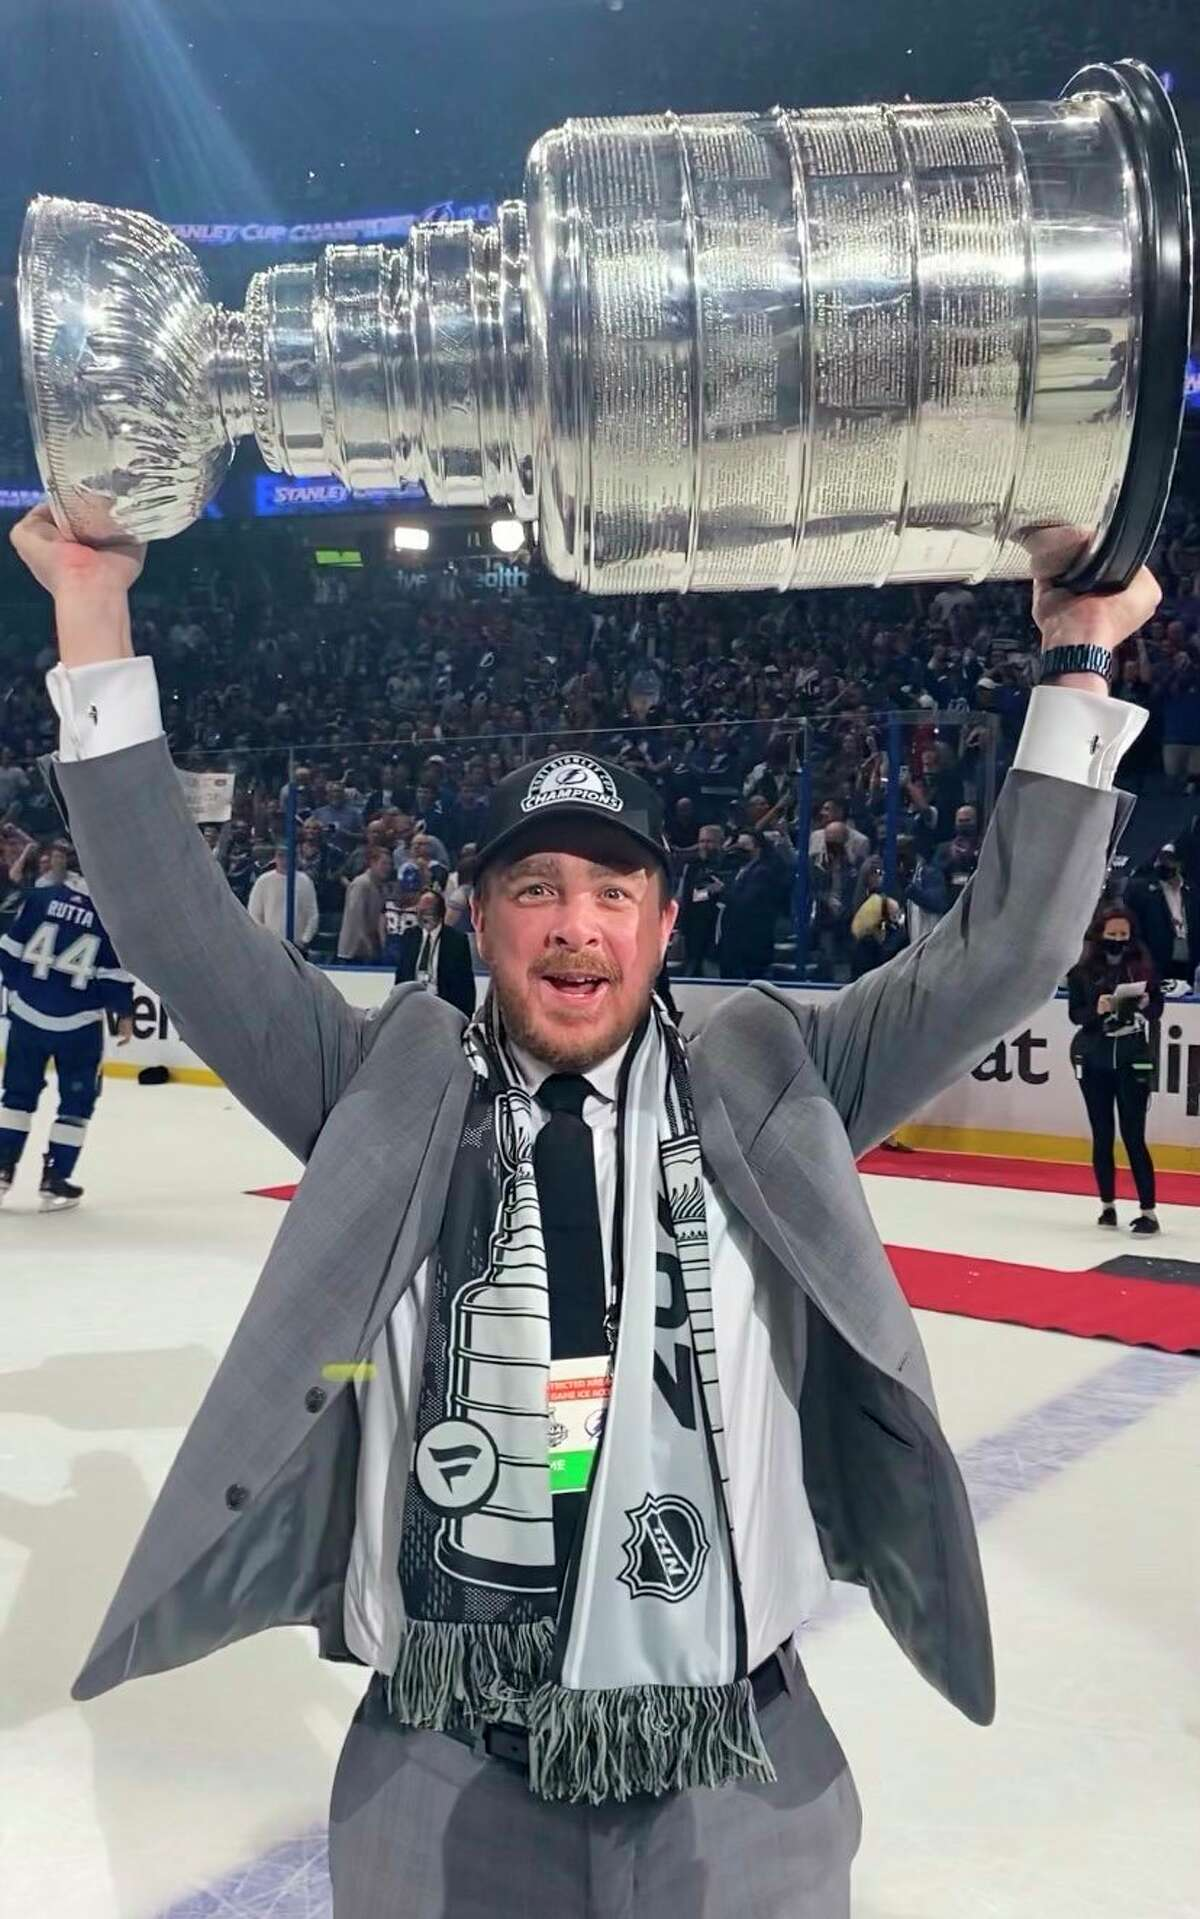 Big Rapids native Brian Garlock, in his eighth season as video coordinator with the Tampa Bay Lightning, skates with the Stanley Cup after his team won it earlier this month. He will be bringing it to Big Rapids for public viewing on Sunday. (Courtesy photo)